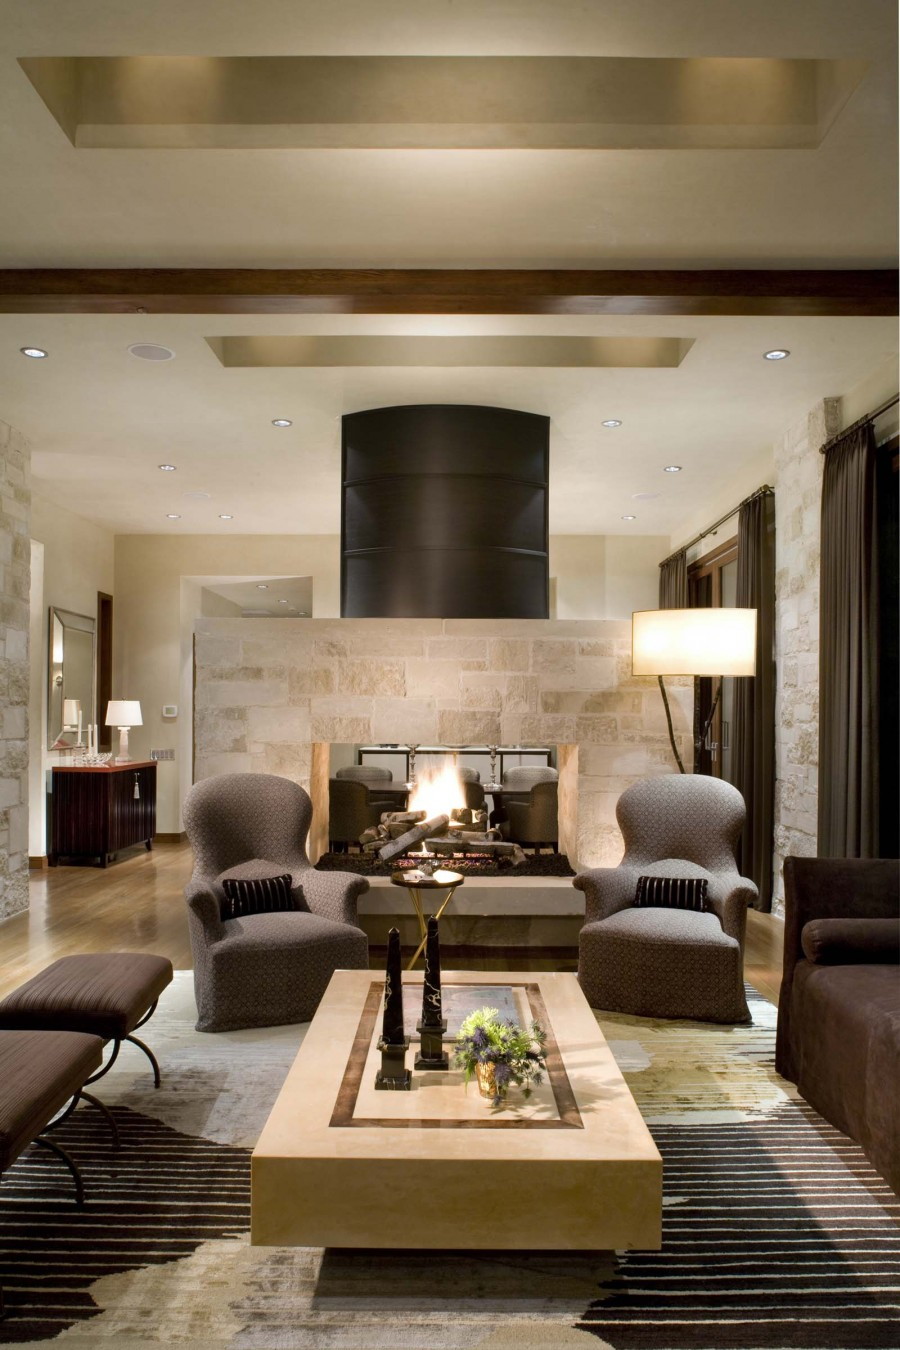 Home Design Ideas Living Room: 16 Fabulous Earth Tones Living Room Designs